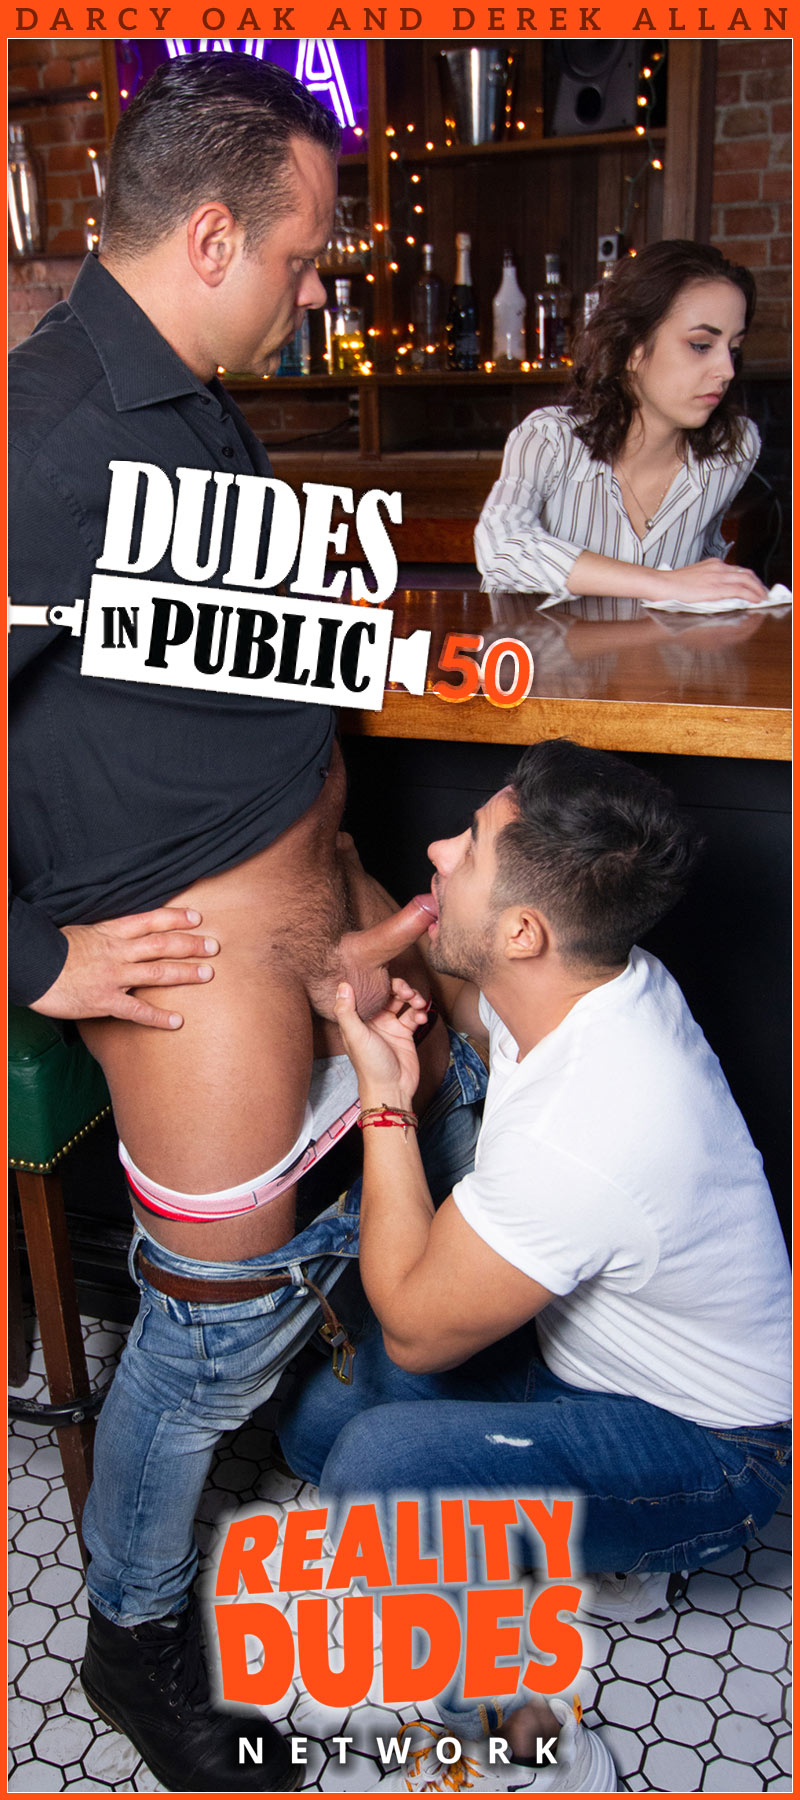 Dudes In Public 50: Bar (with Darcy Oak and Derek Allan)